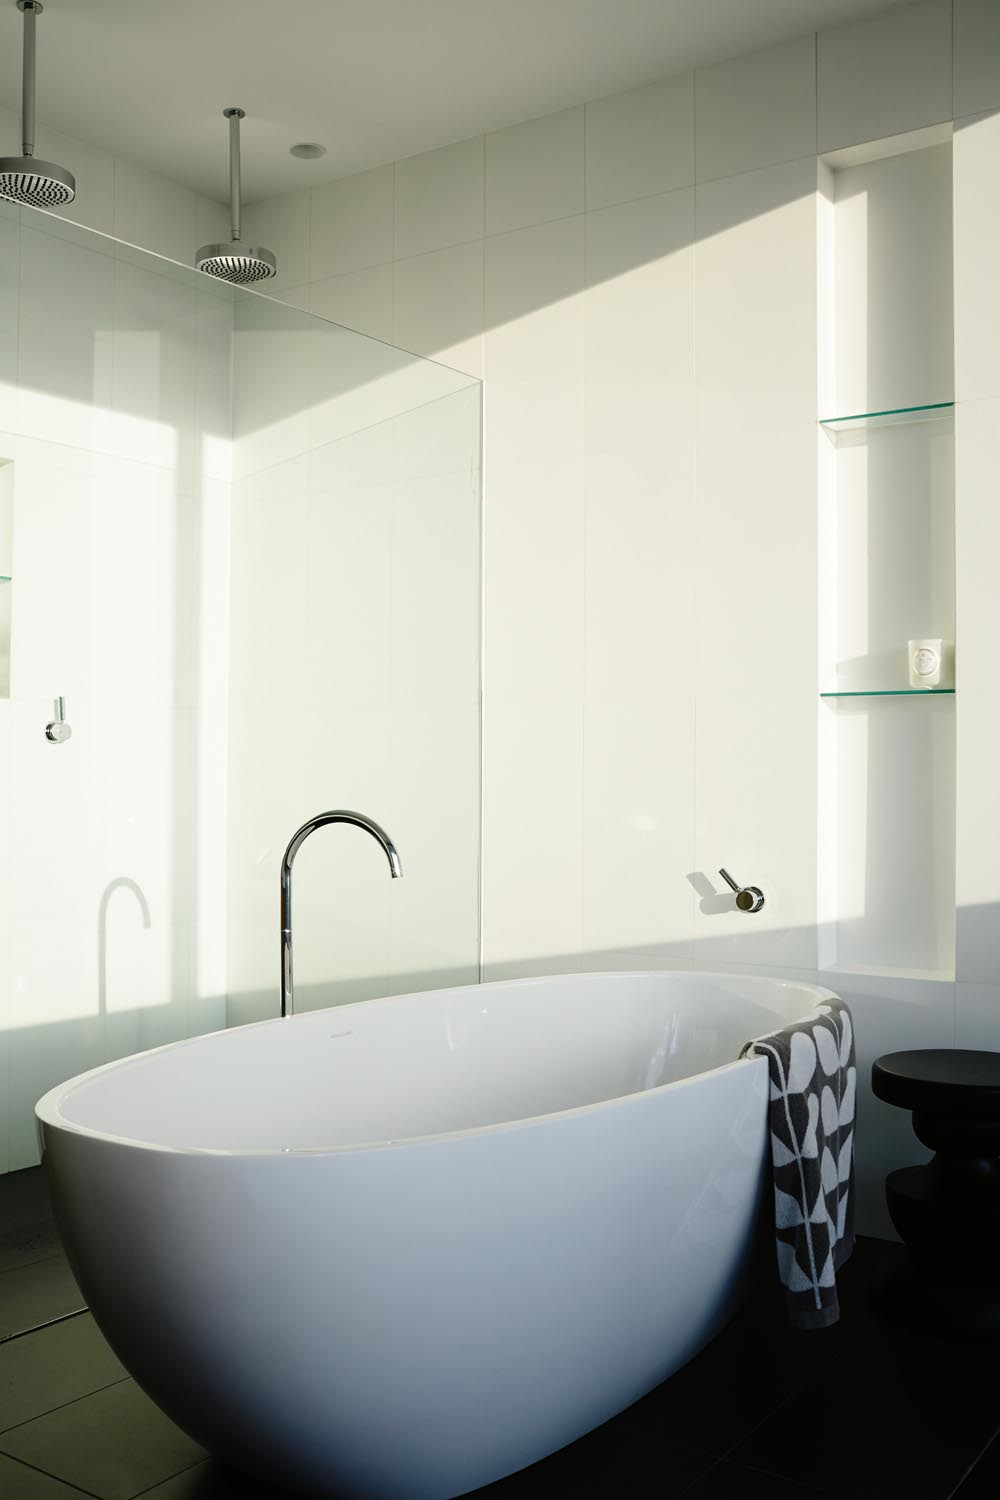 A freestanding bath is the perfect vessel to sit back and unwind in